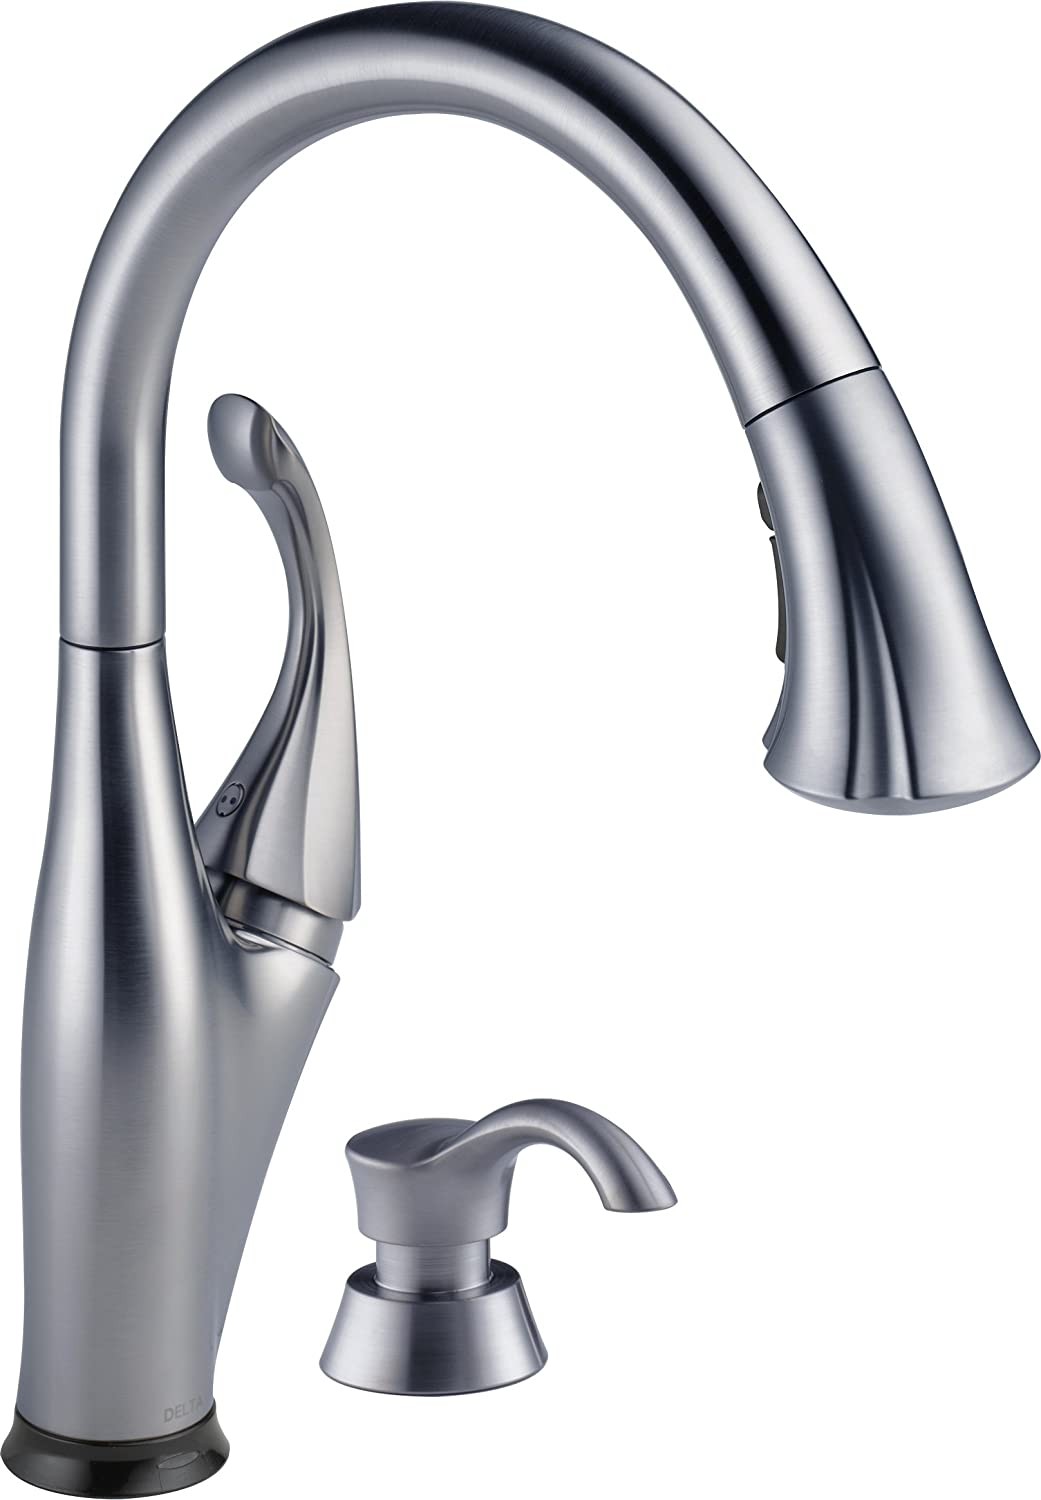 Delta Faucet 9192T-ARSD-DST Addison Single Handle Pull-Down Kitchen Faucet with Touch2OTechnology and Soap Dispenser, Arctic Stainless by DELTA FAUCET B00FUH0HVA  Arctic Stainless